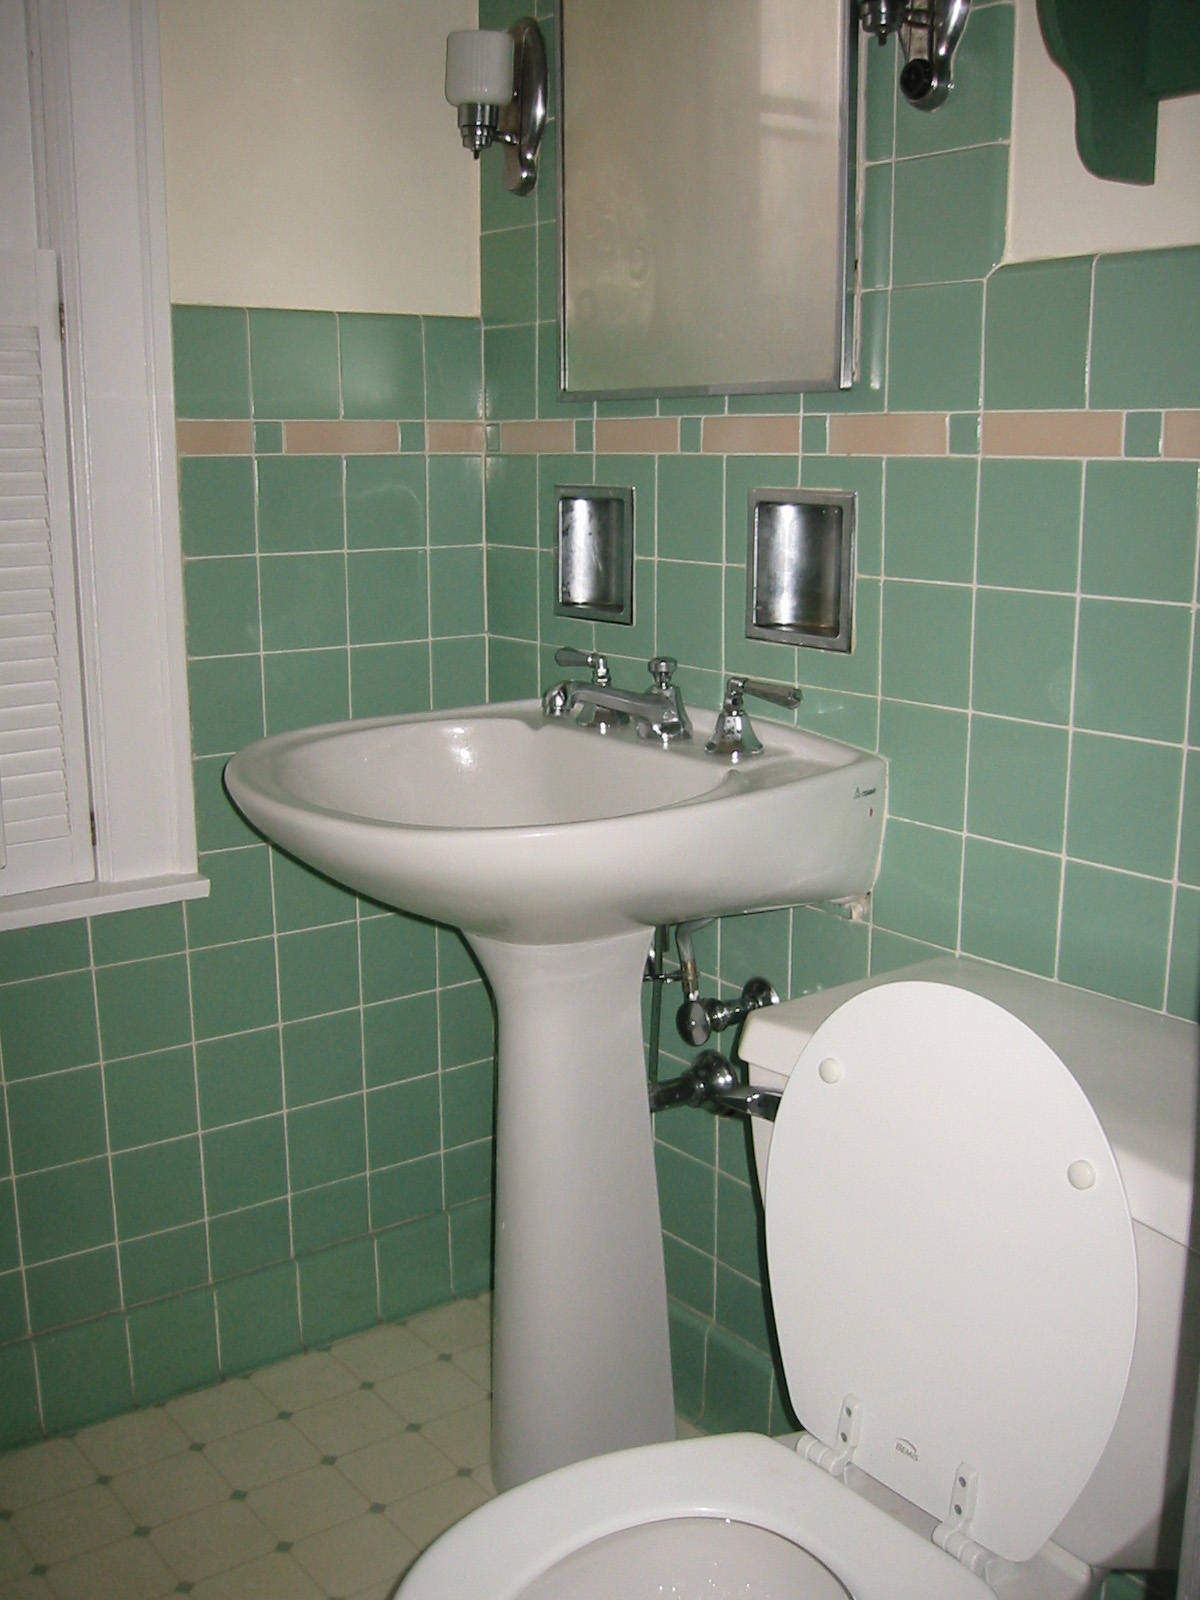 Small Hall Bathroom Remodel Ideas just*grand: *original 1930's hall bathroom remodel * before and after